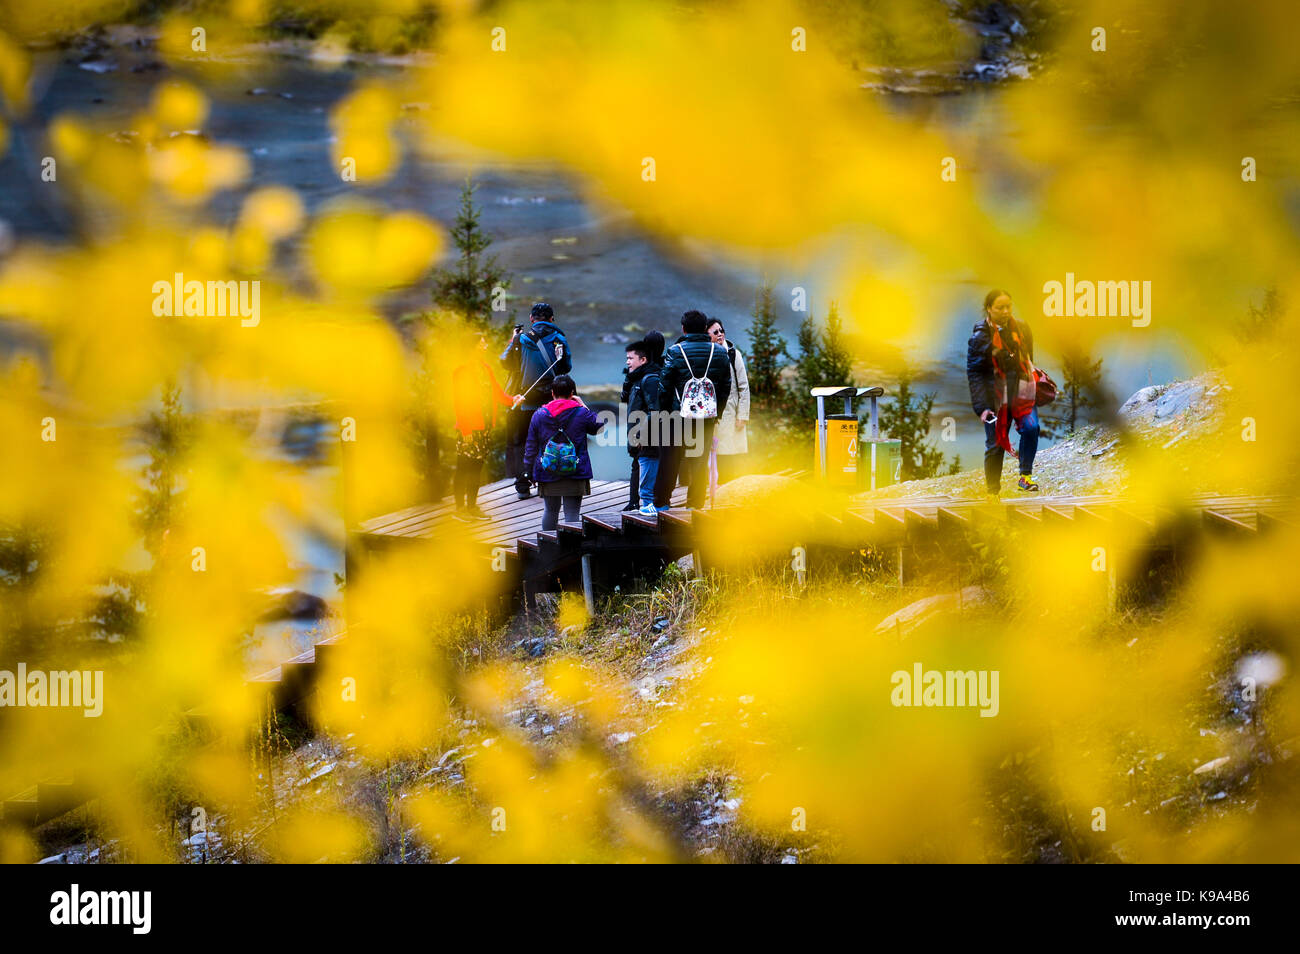 Kanas. 22nd Sep, 2017. Tourists visit the Kanas scenic area in northwest China's Xinjiang Uygur Autonomous Region, - Stock Image